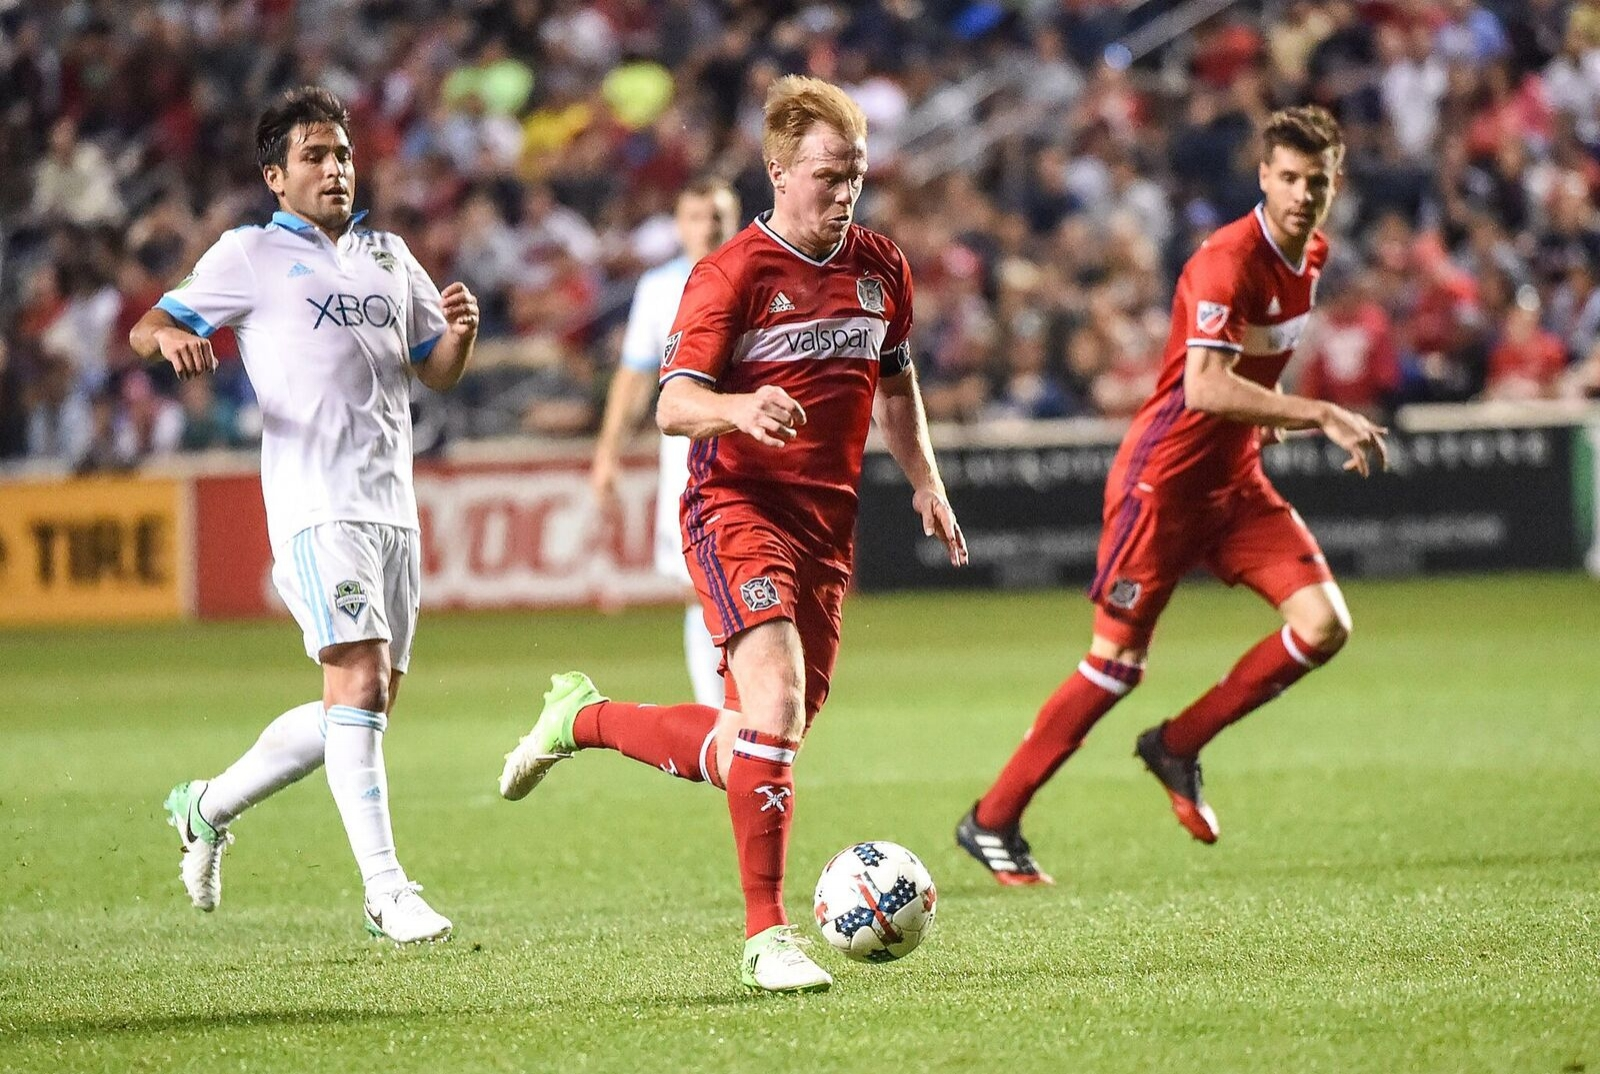 Chicago Fire | Find Major League Soccer Games, Events & Schedule